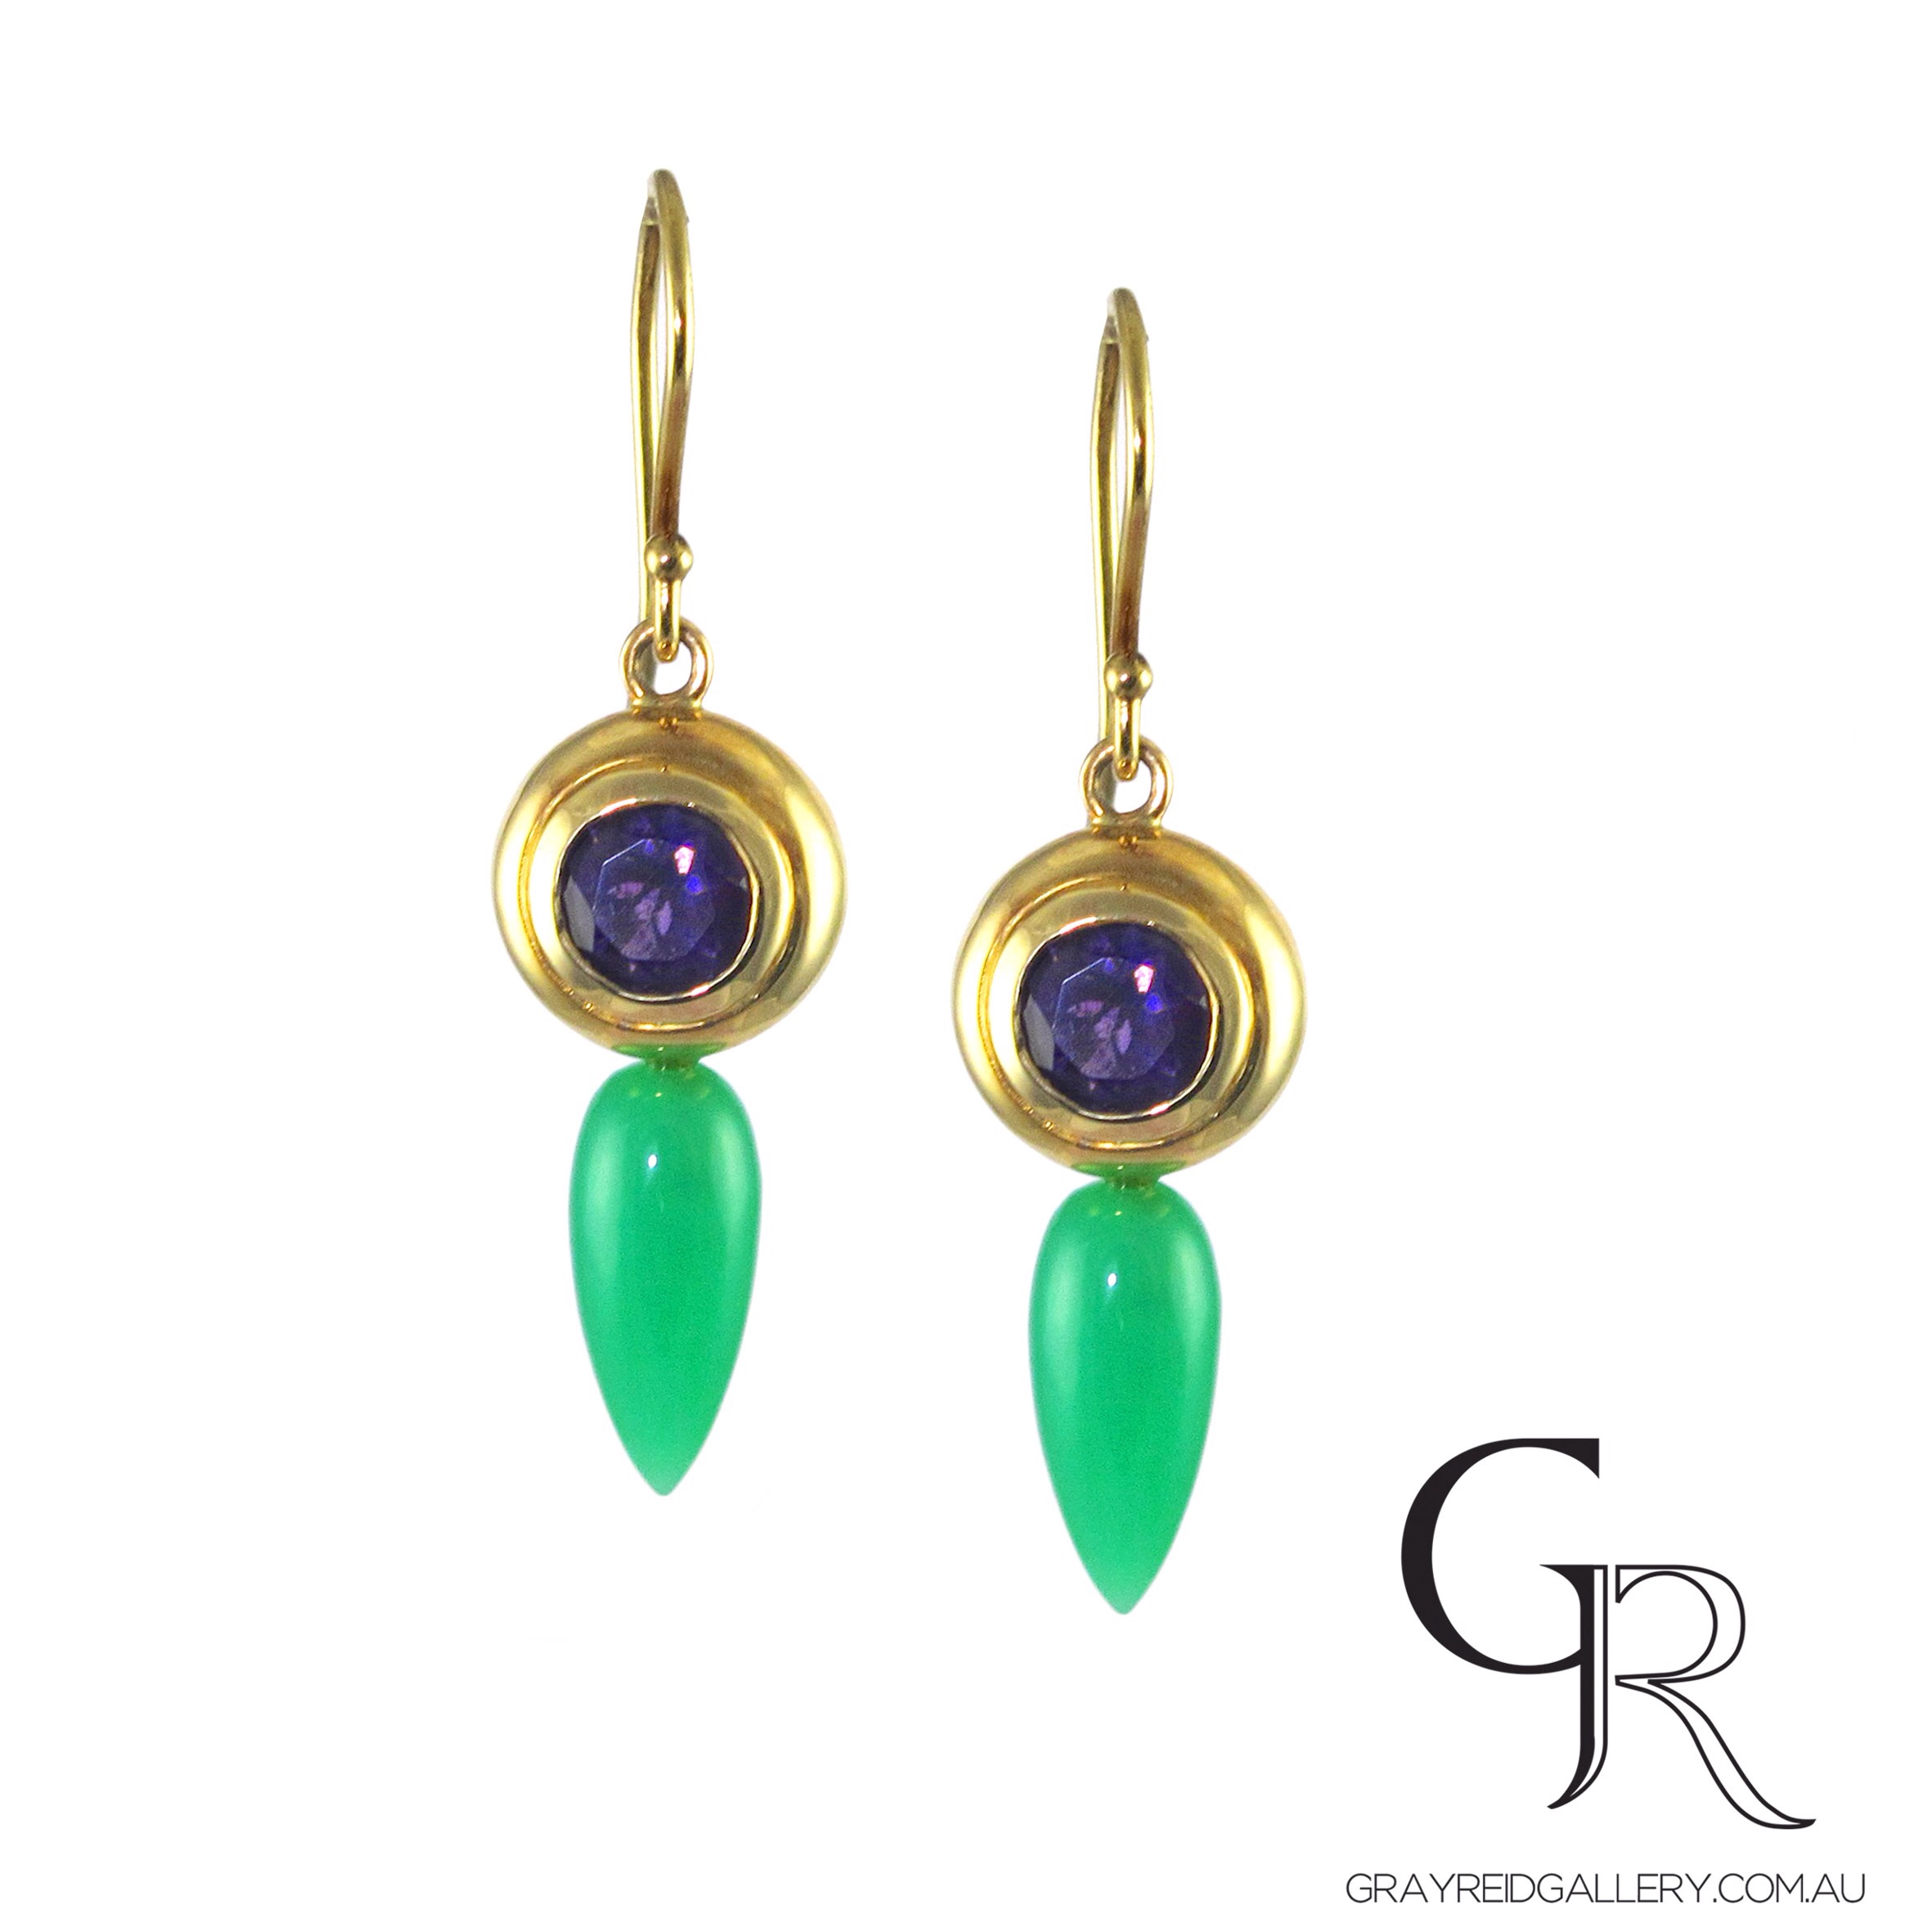 Chrysoprase and amethyst earrings in 18ct yellow gold.